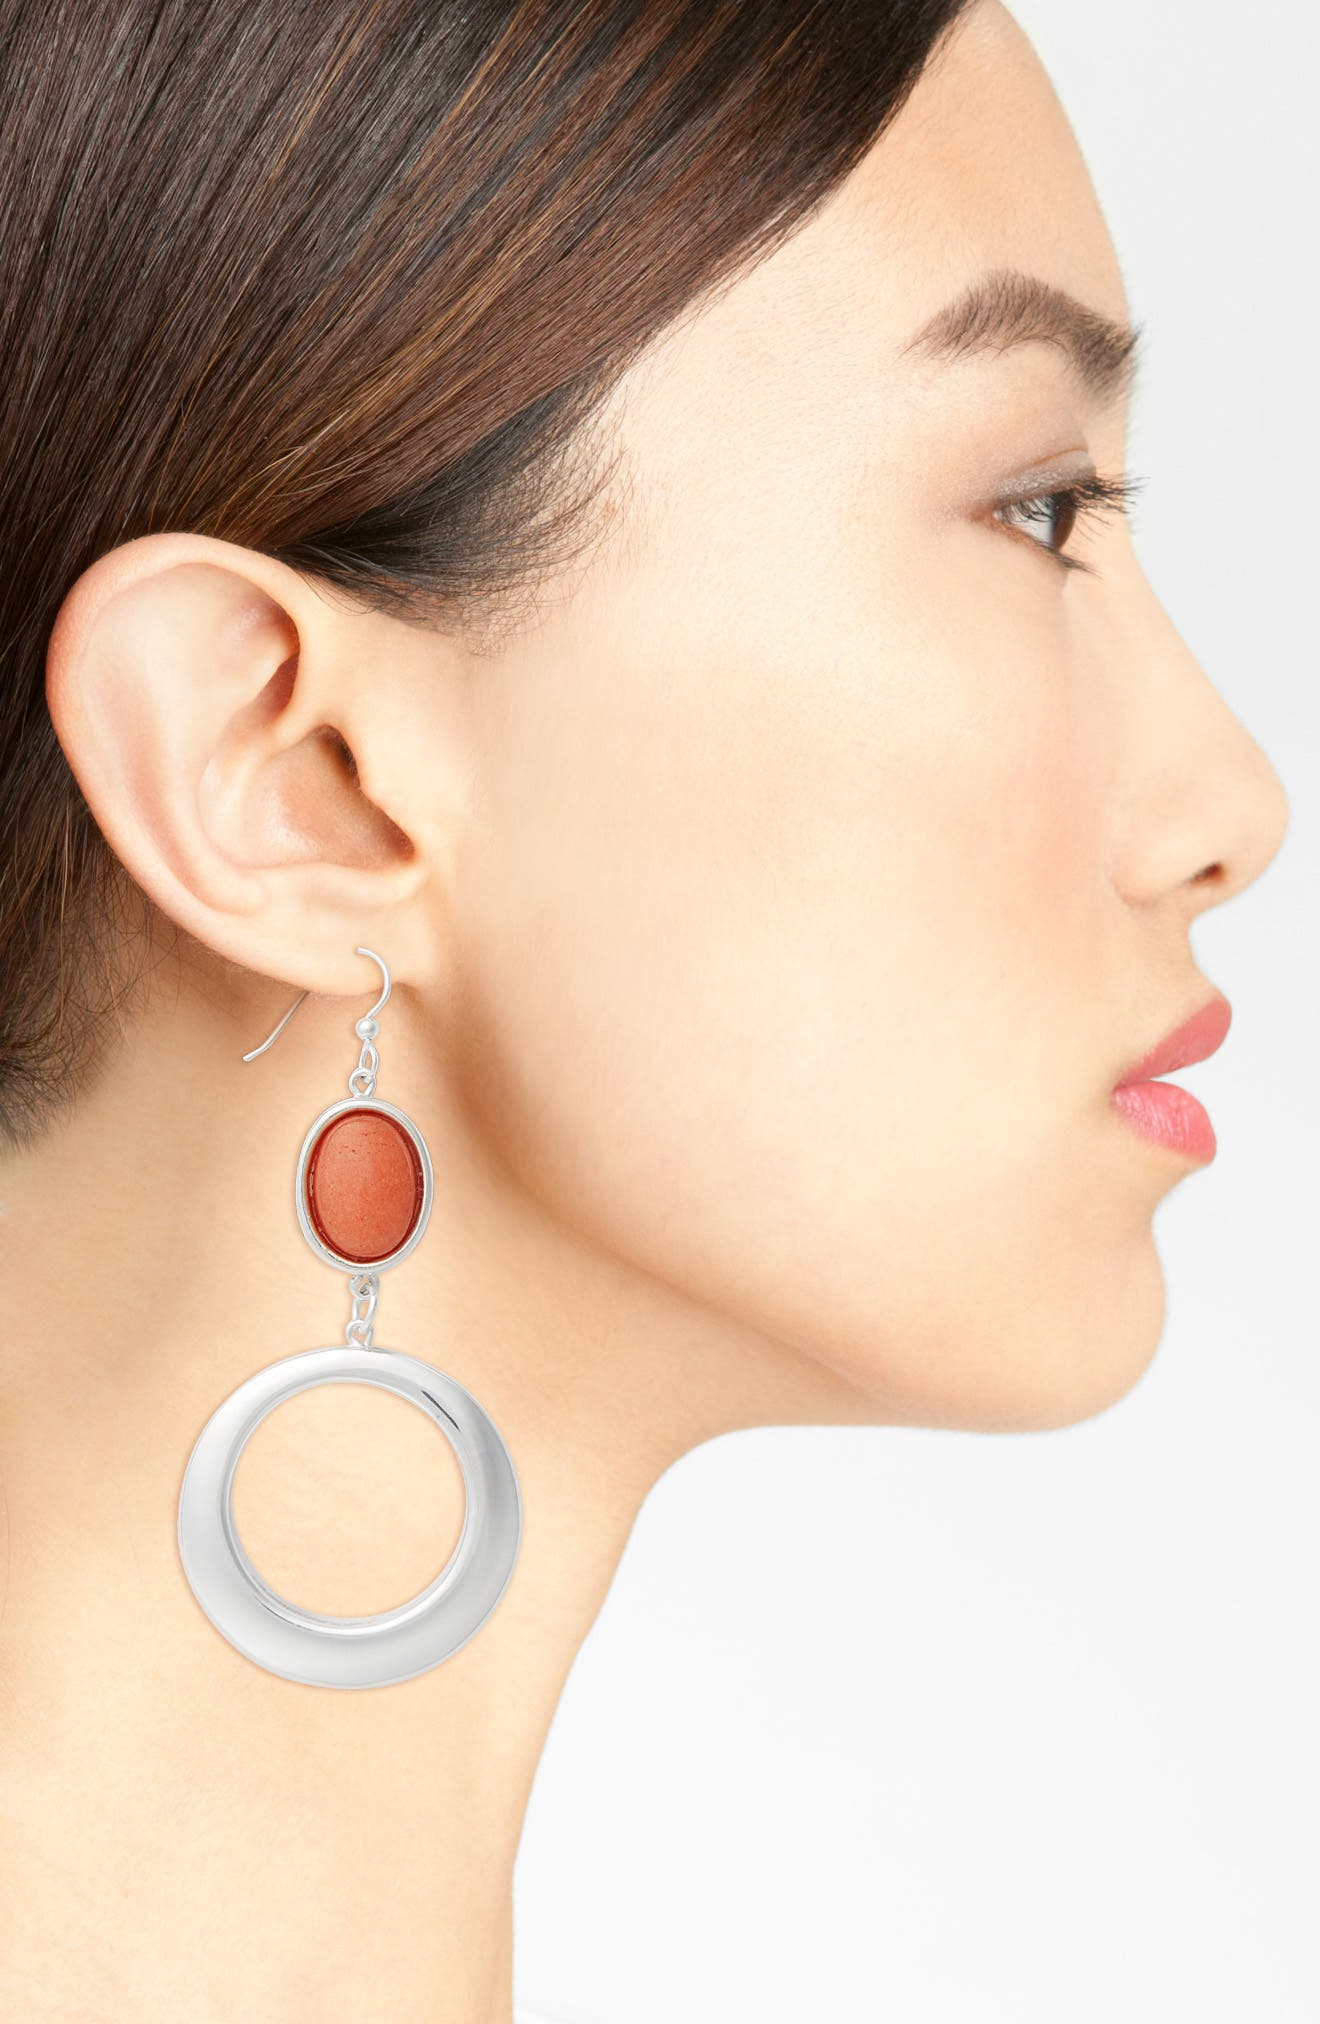 Semiprecious Stone Hoop Drop Earrings,                             Alternate thumbnail 2, color,                             Orange/ Silver